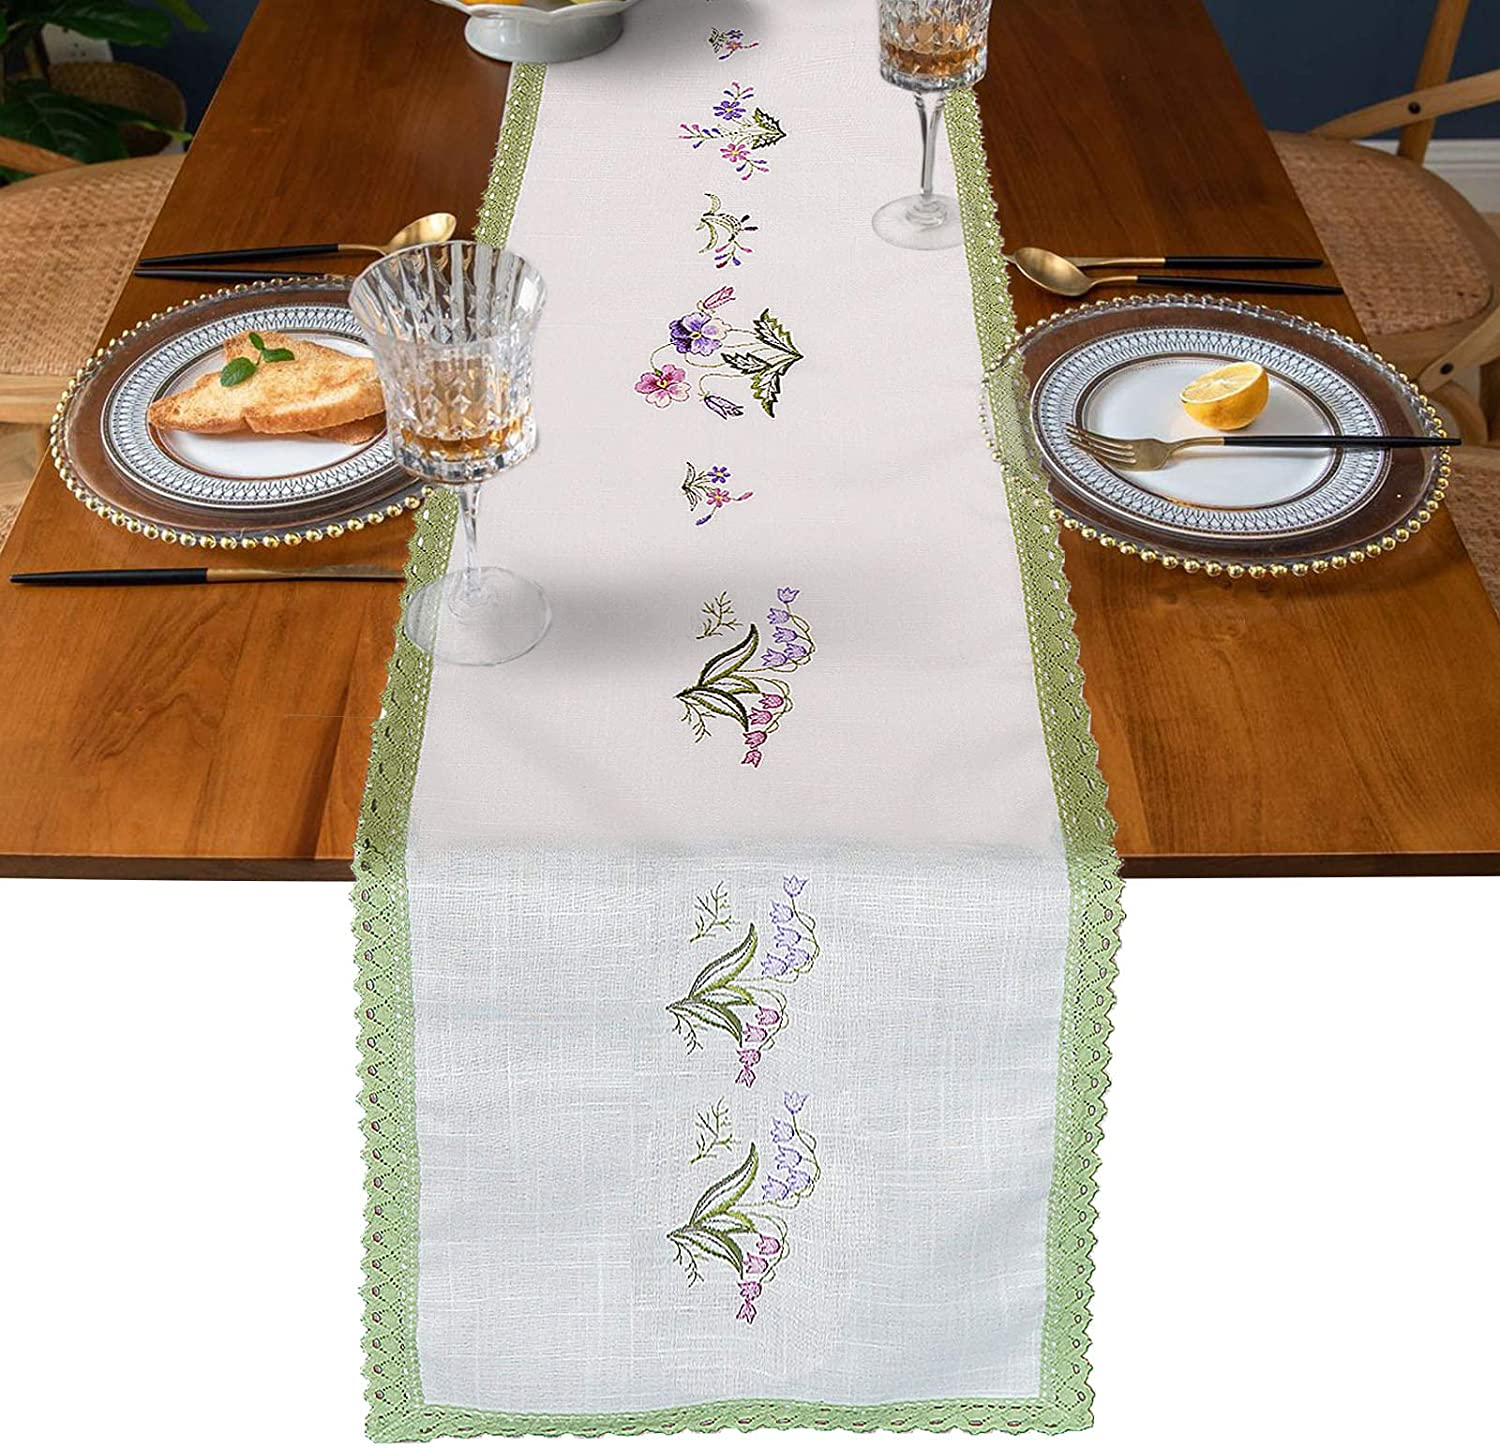 Table Runners 72 inches Long Spring Flower White Green Embroidered Decor Coffee Modern Farmhouse Table Runner for Living Dining Room Birthday Party Holiday Wedding 12x72In,1pc